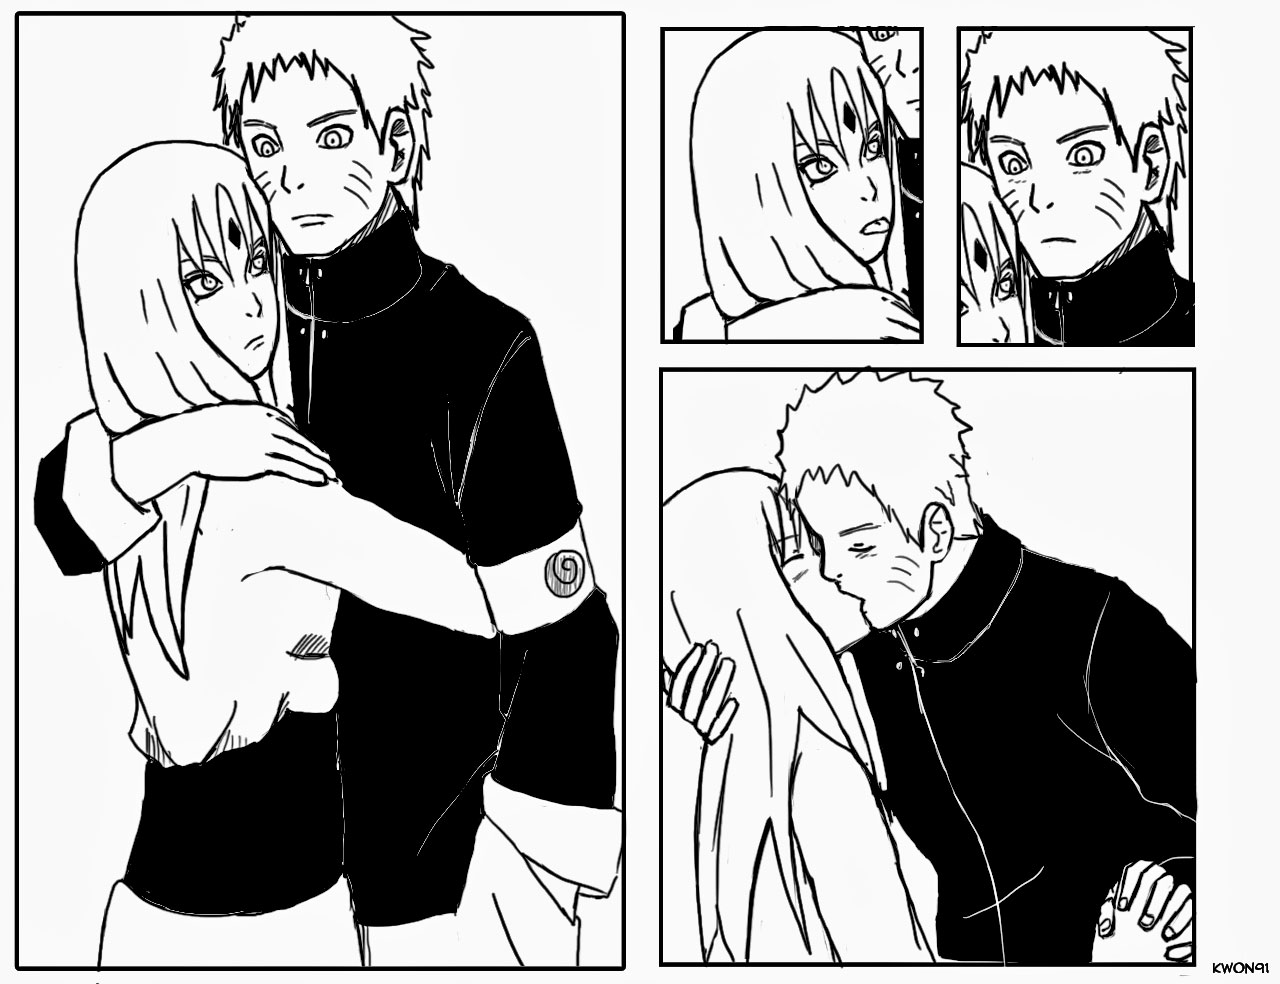 NaruSaku hug and kiss